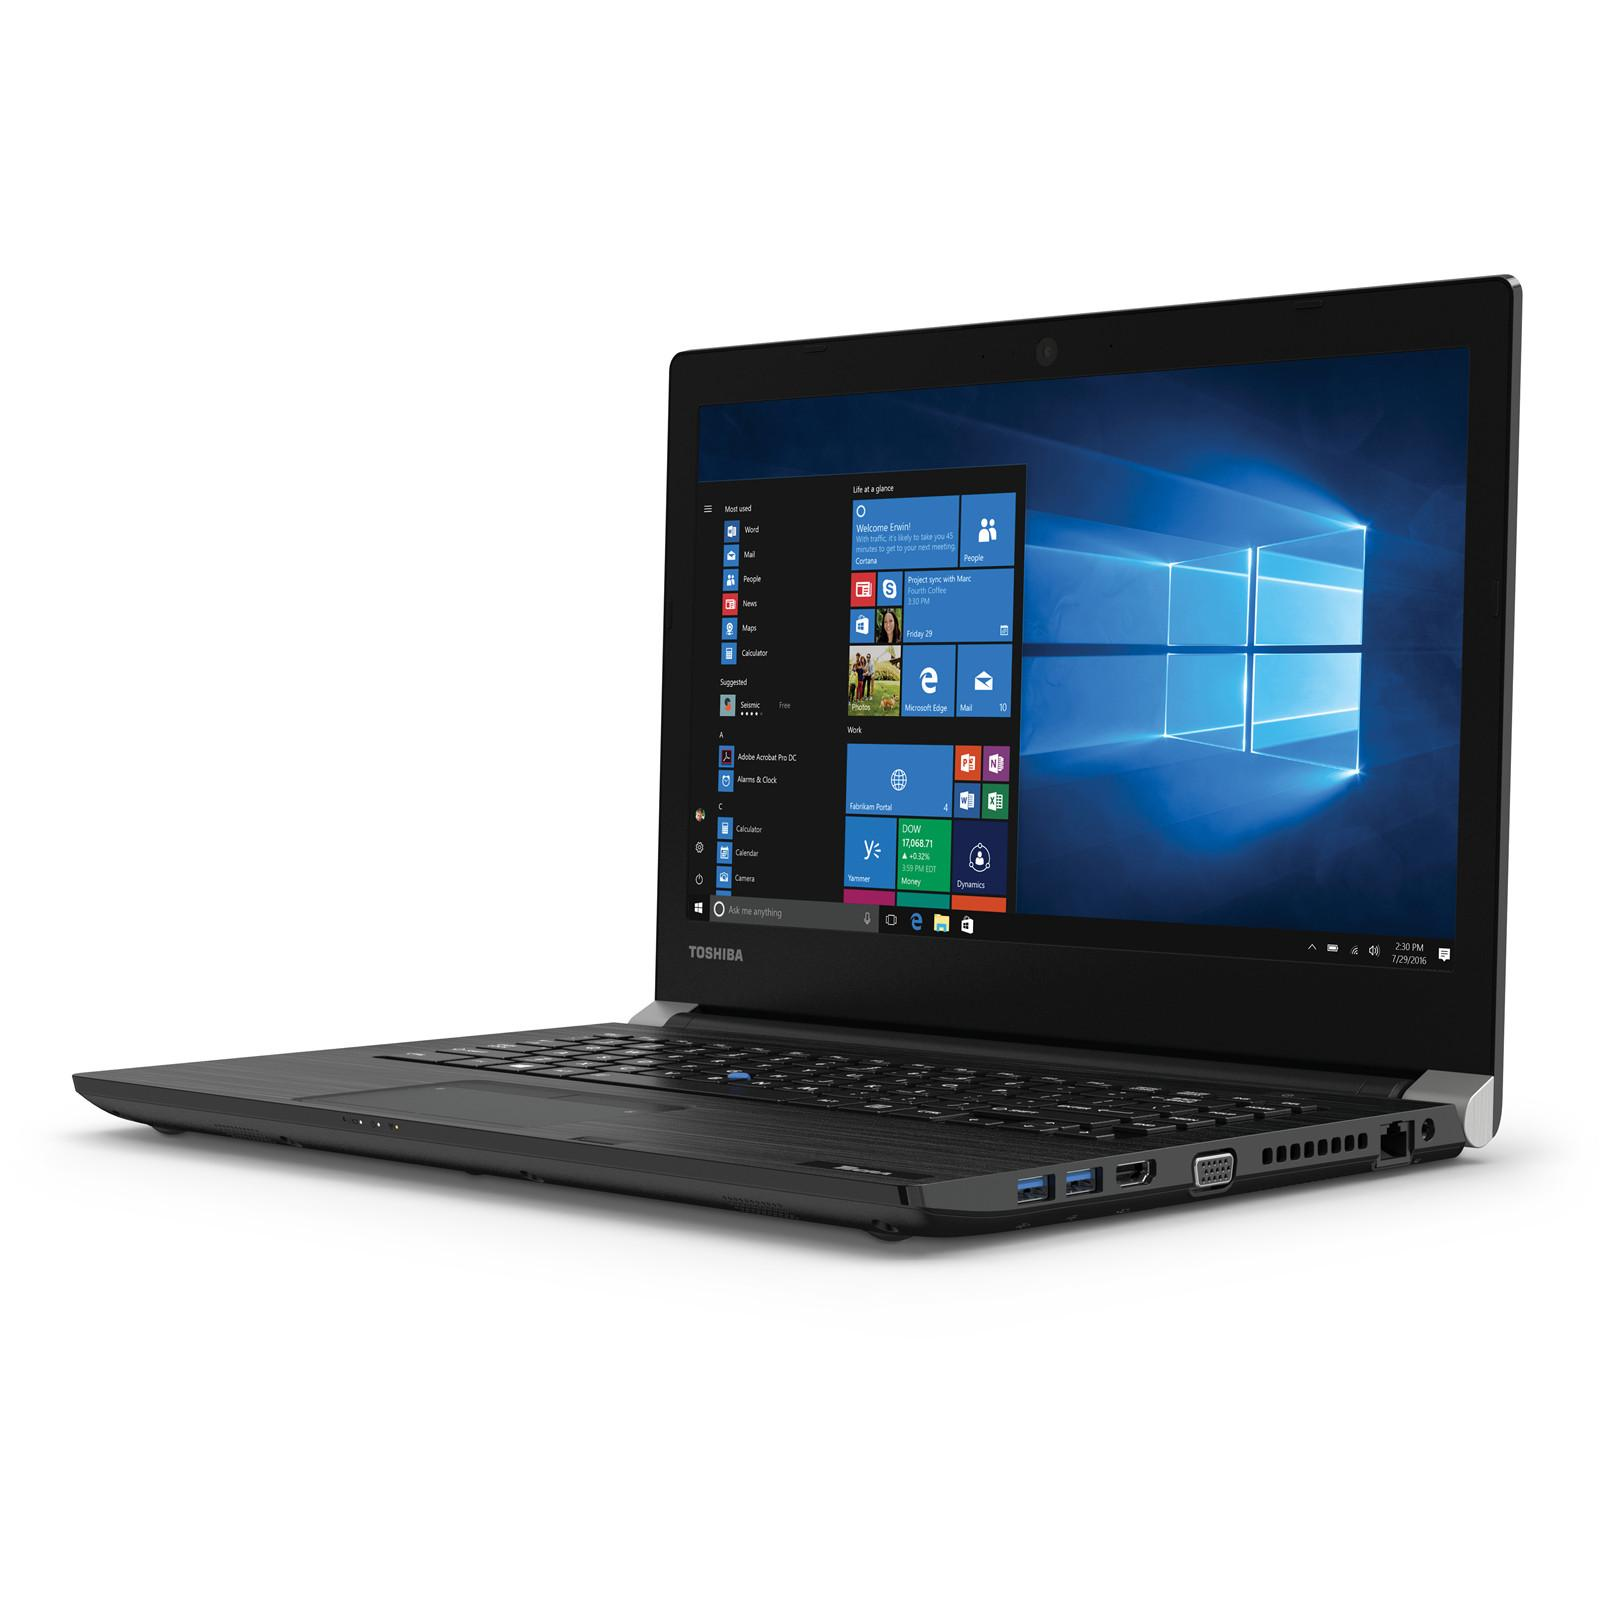 https://www.lazada.co.id/products/laptop-toshiba-tecra-a40-d148-14-inch-i5-7200u-4gb-ddr4-1tb-dvd-rw-win10-home-garansi-3-thn-i459220963-s552946900.html